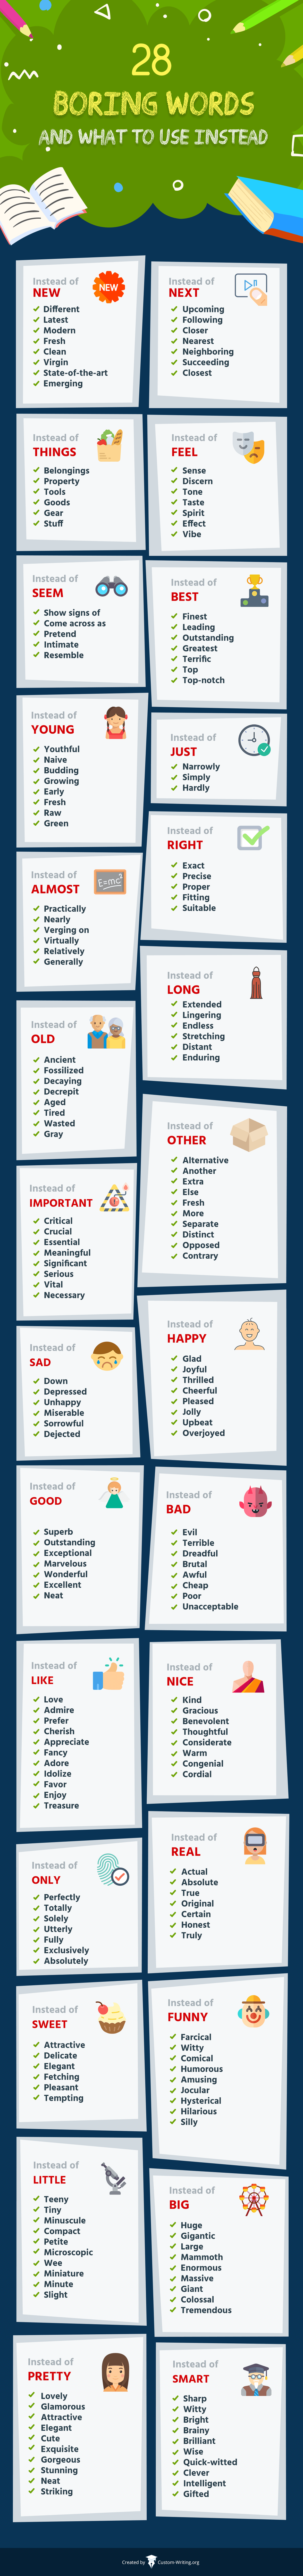 Infographic: 28 Boring Words and What to Use Instead by Jack Milgram of Custom Writing | From the blog of Nicholas C. Rossis, author of science fiction, the Pearseus epic fantasy series and children's books